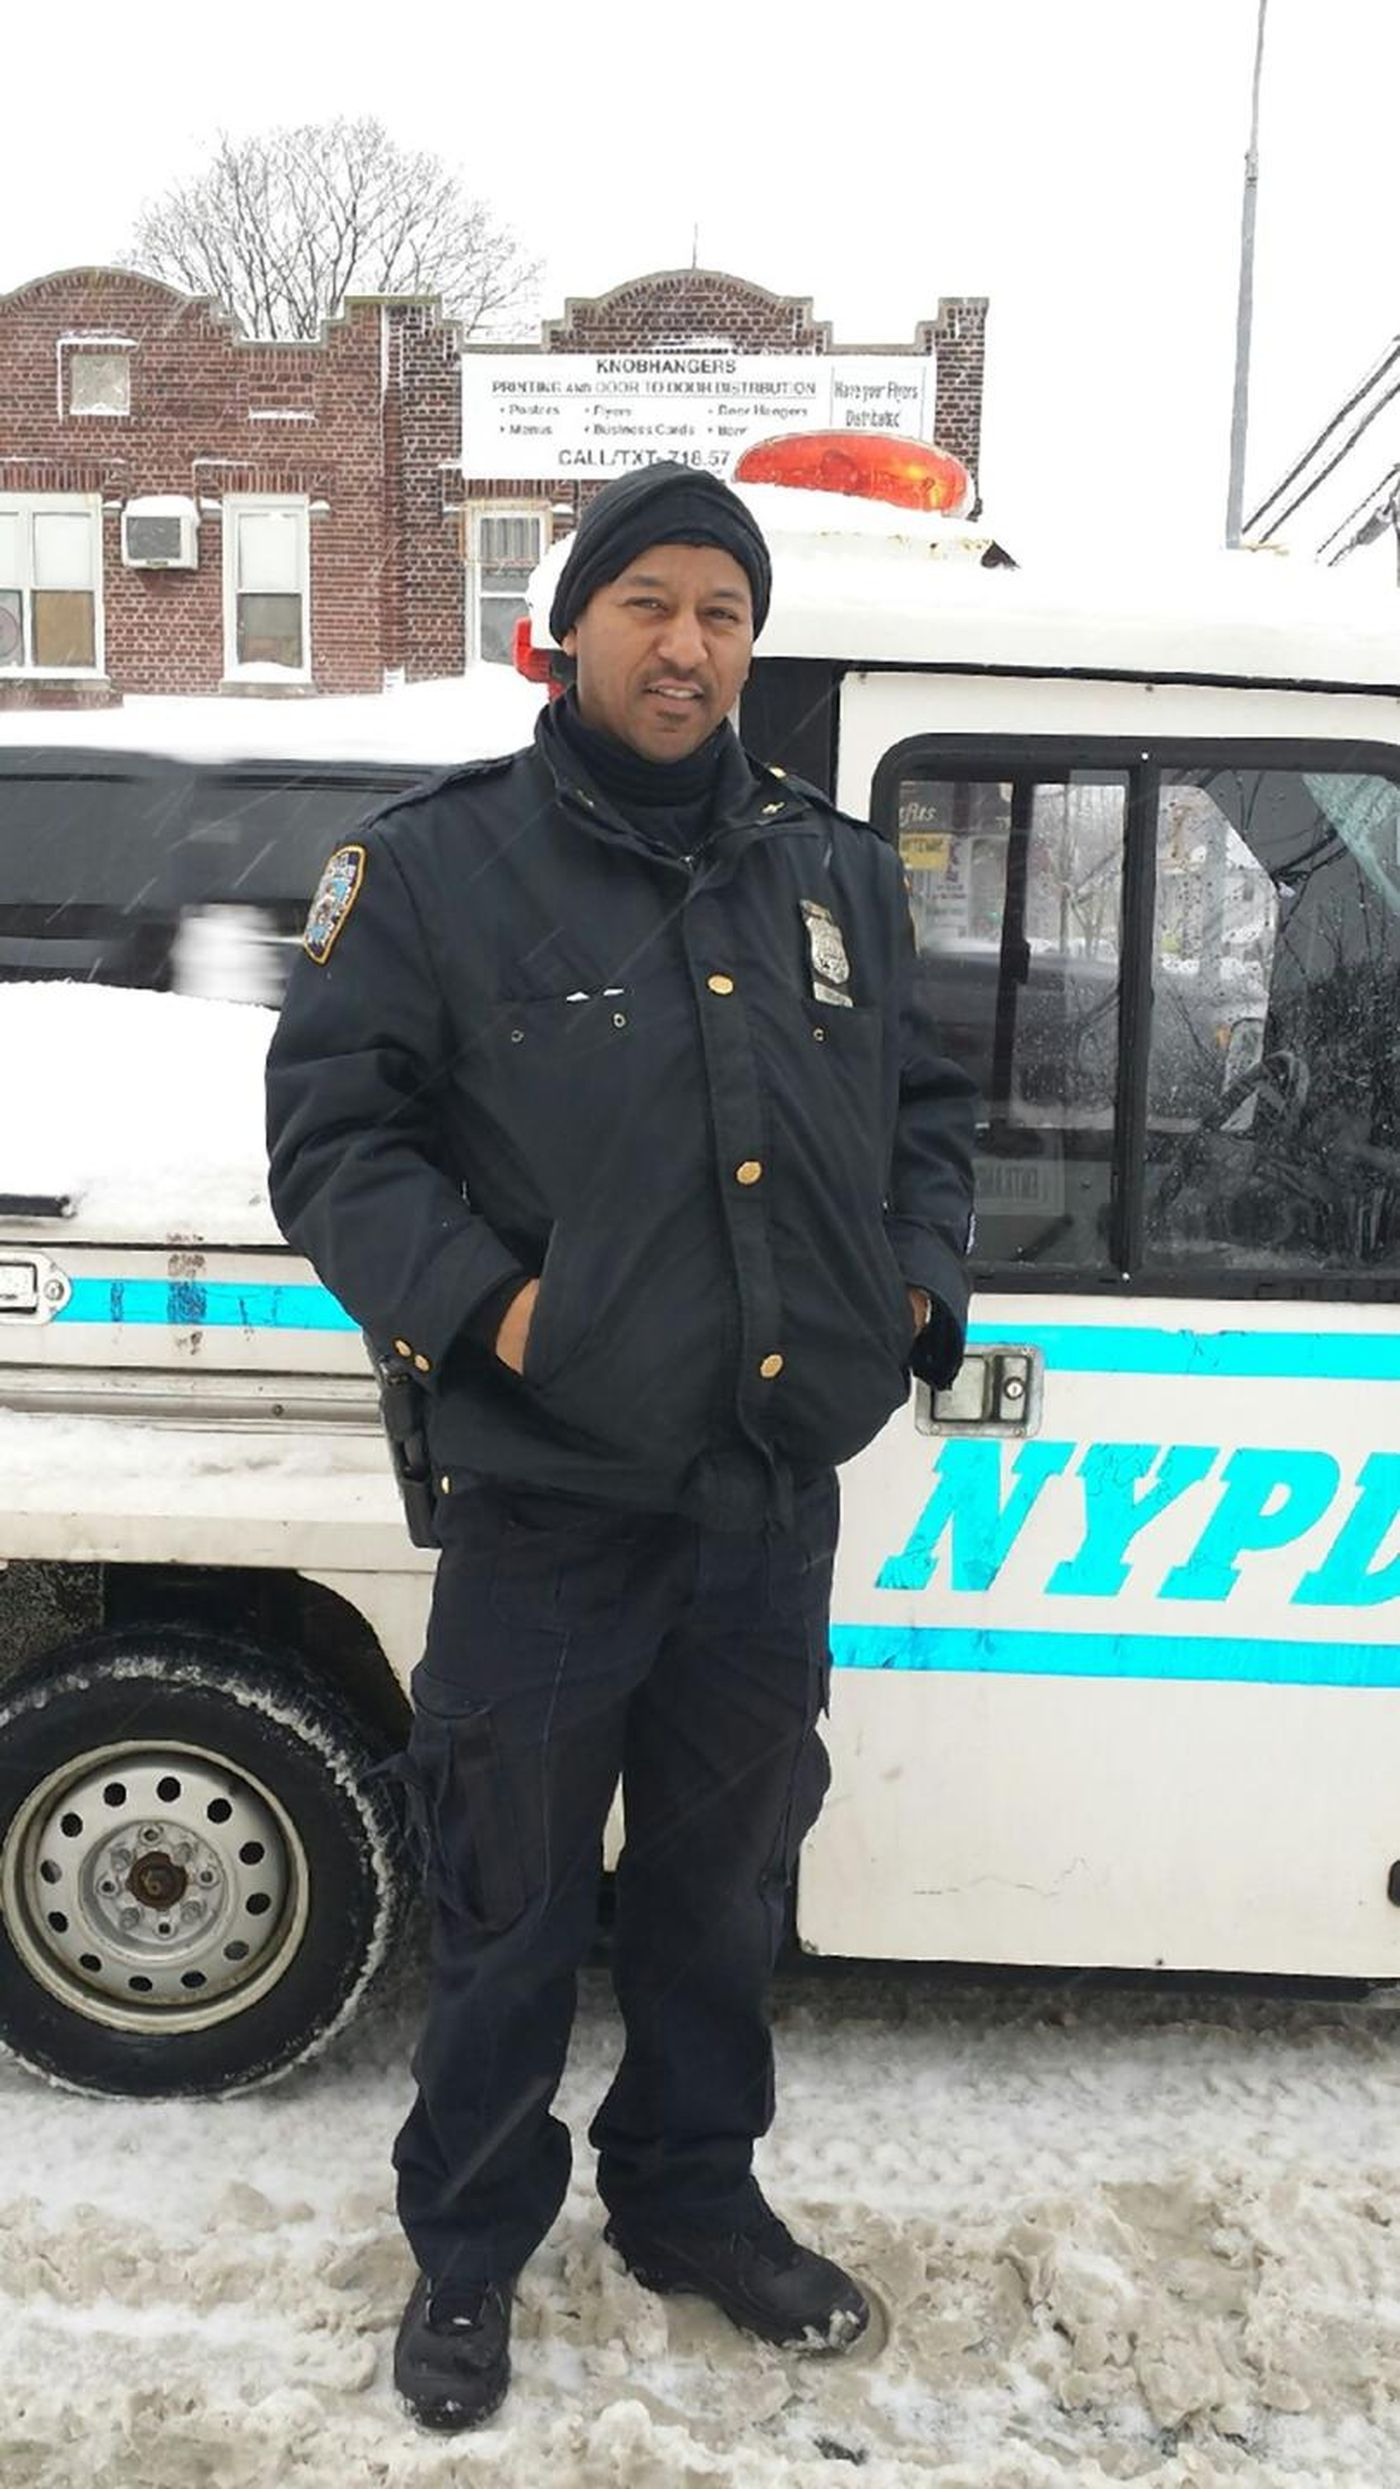 Police Officer Dave E. Guevara | New York City Police Department, New York